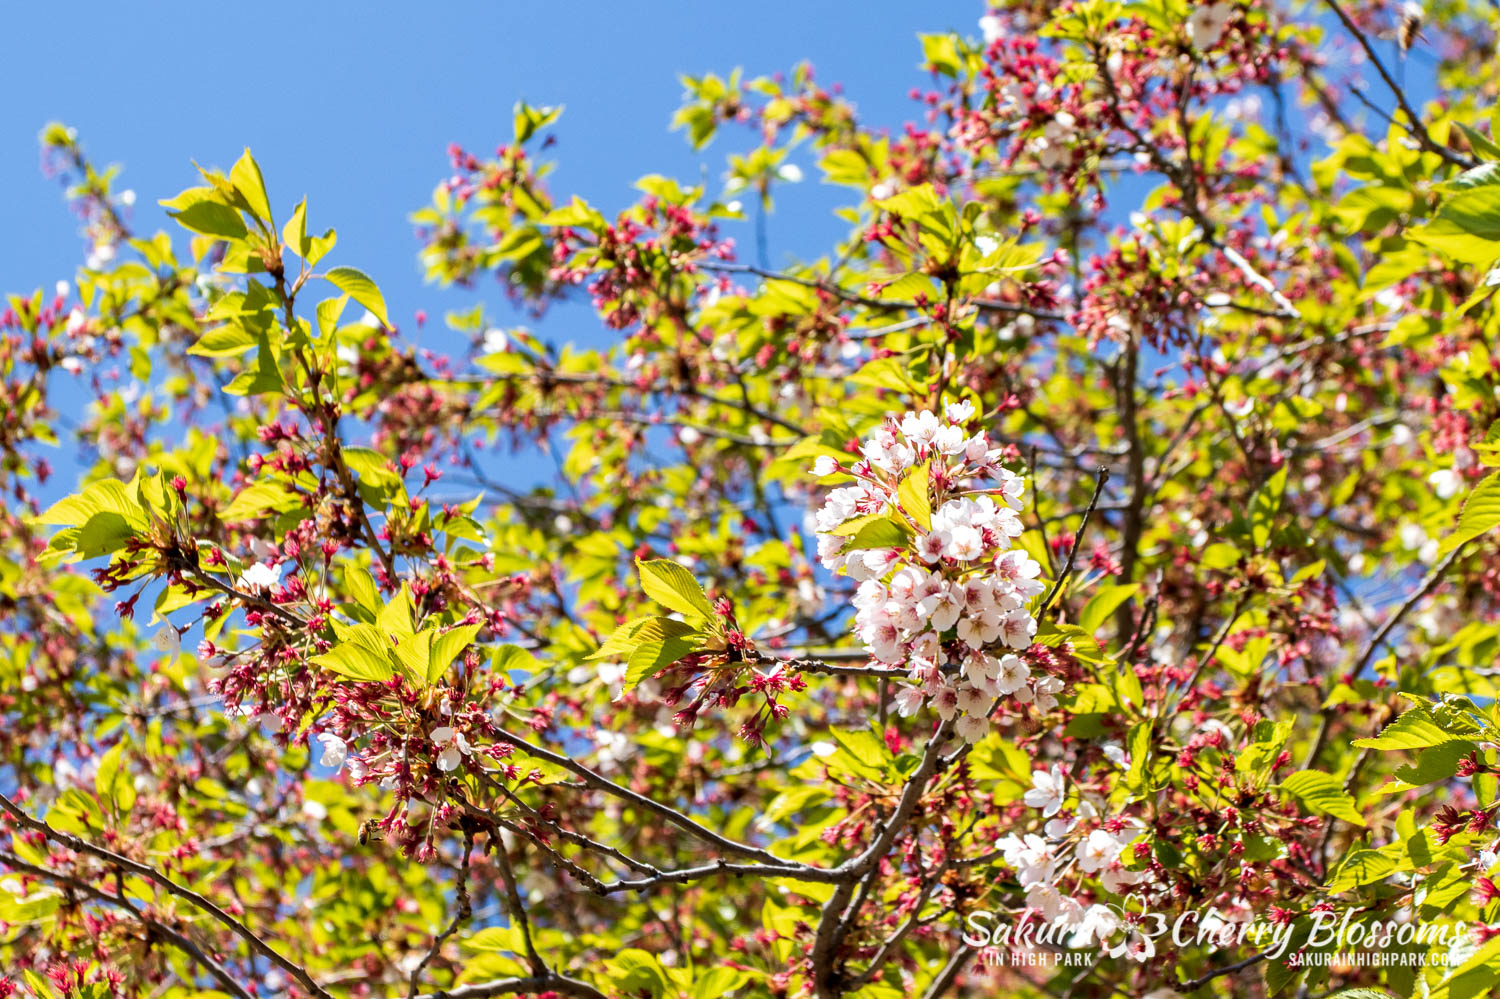 sakura watch may 21-2019-4.jpg